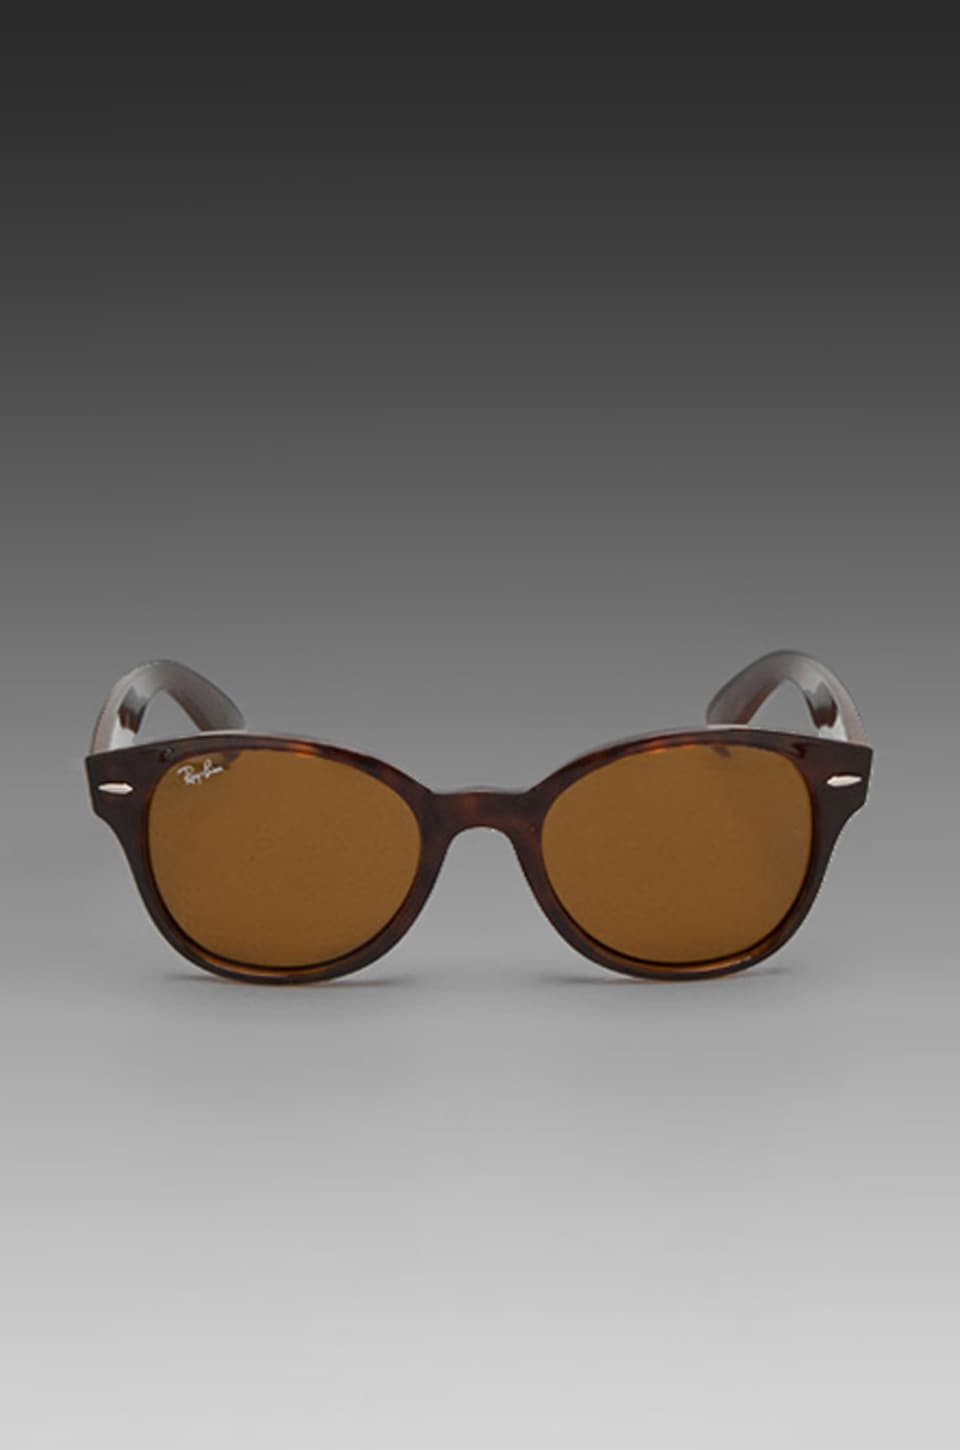 Ray-Ban High Street Wayfarer in Dark Havana